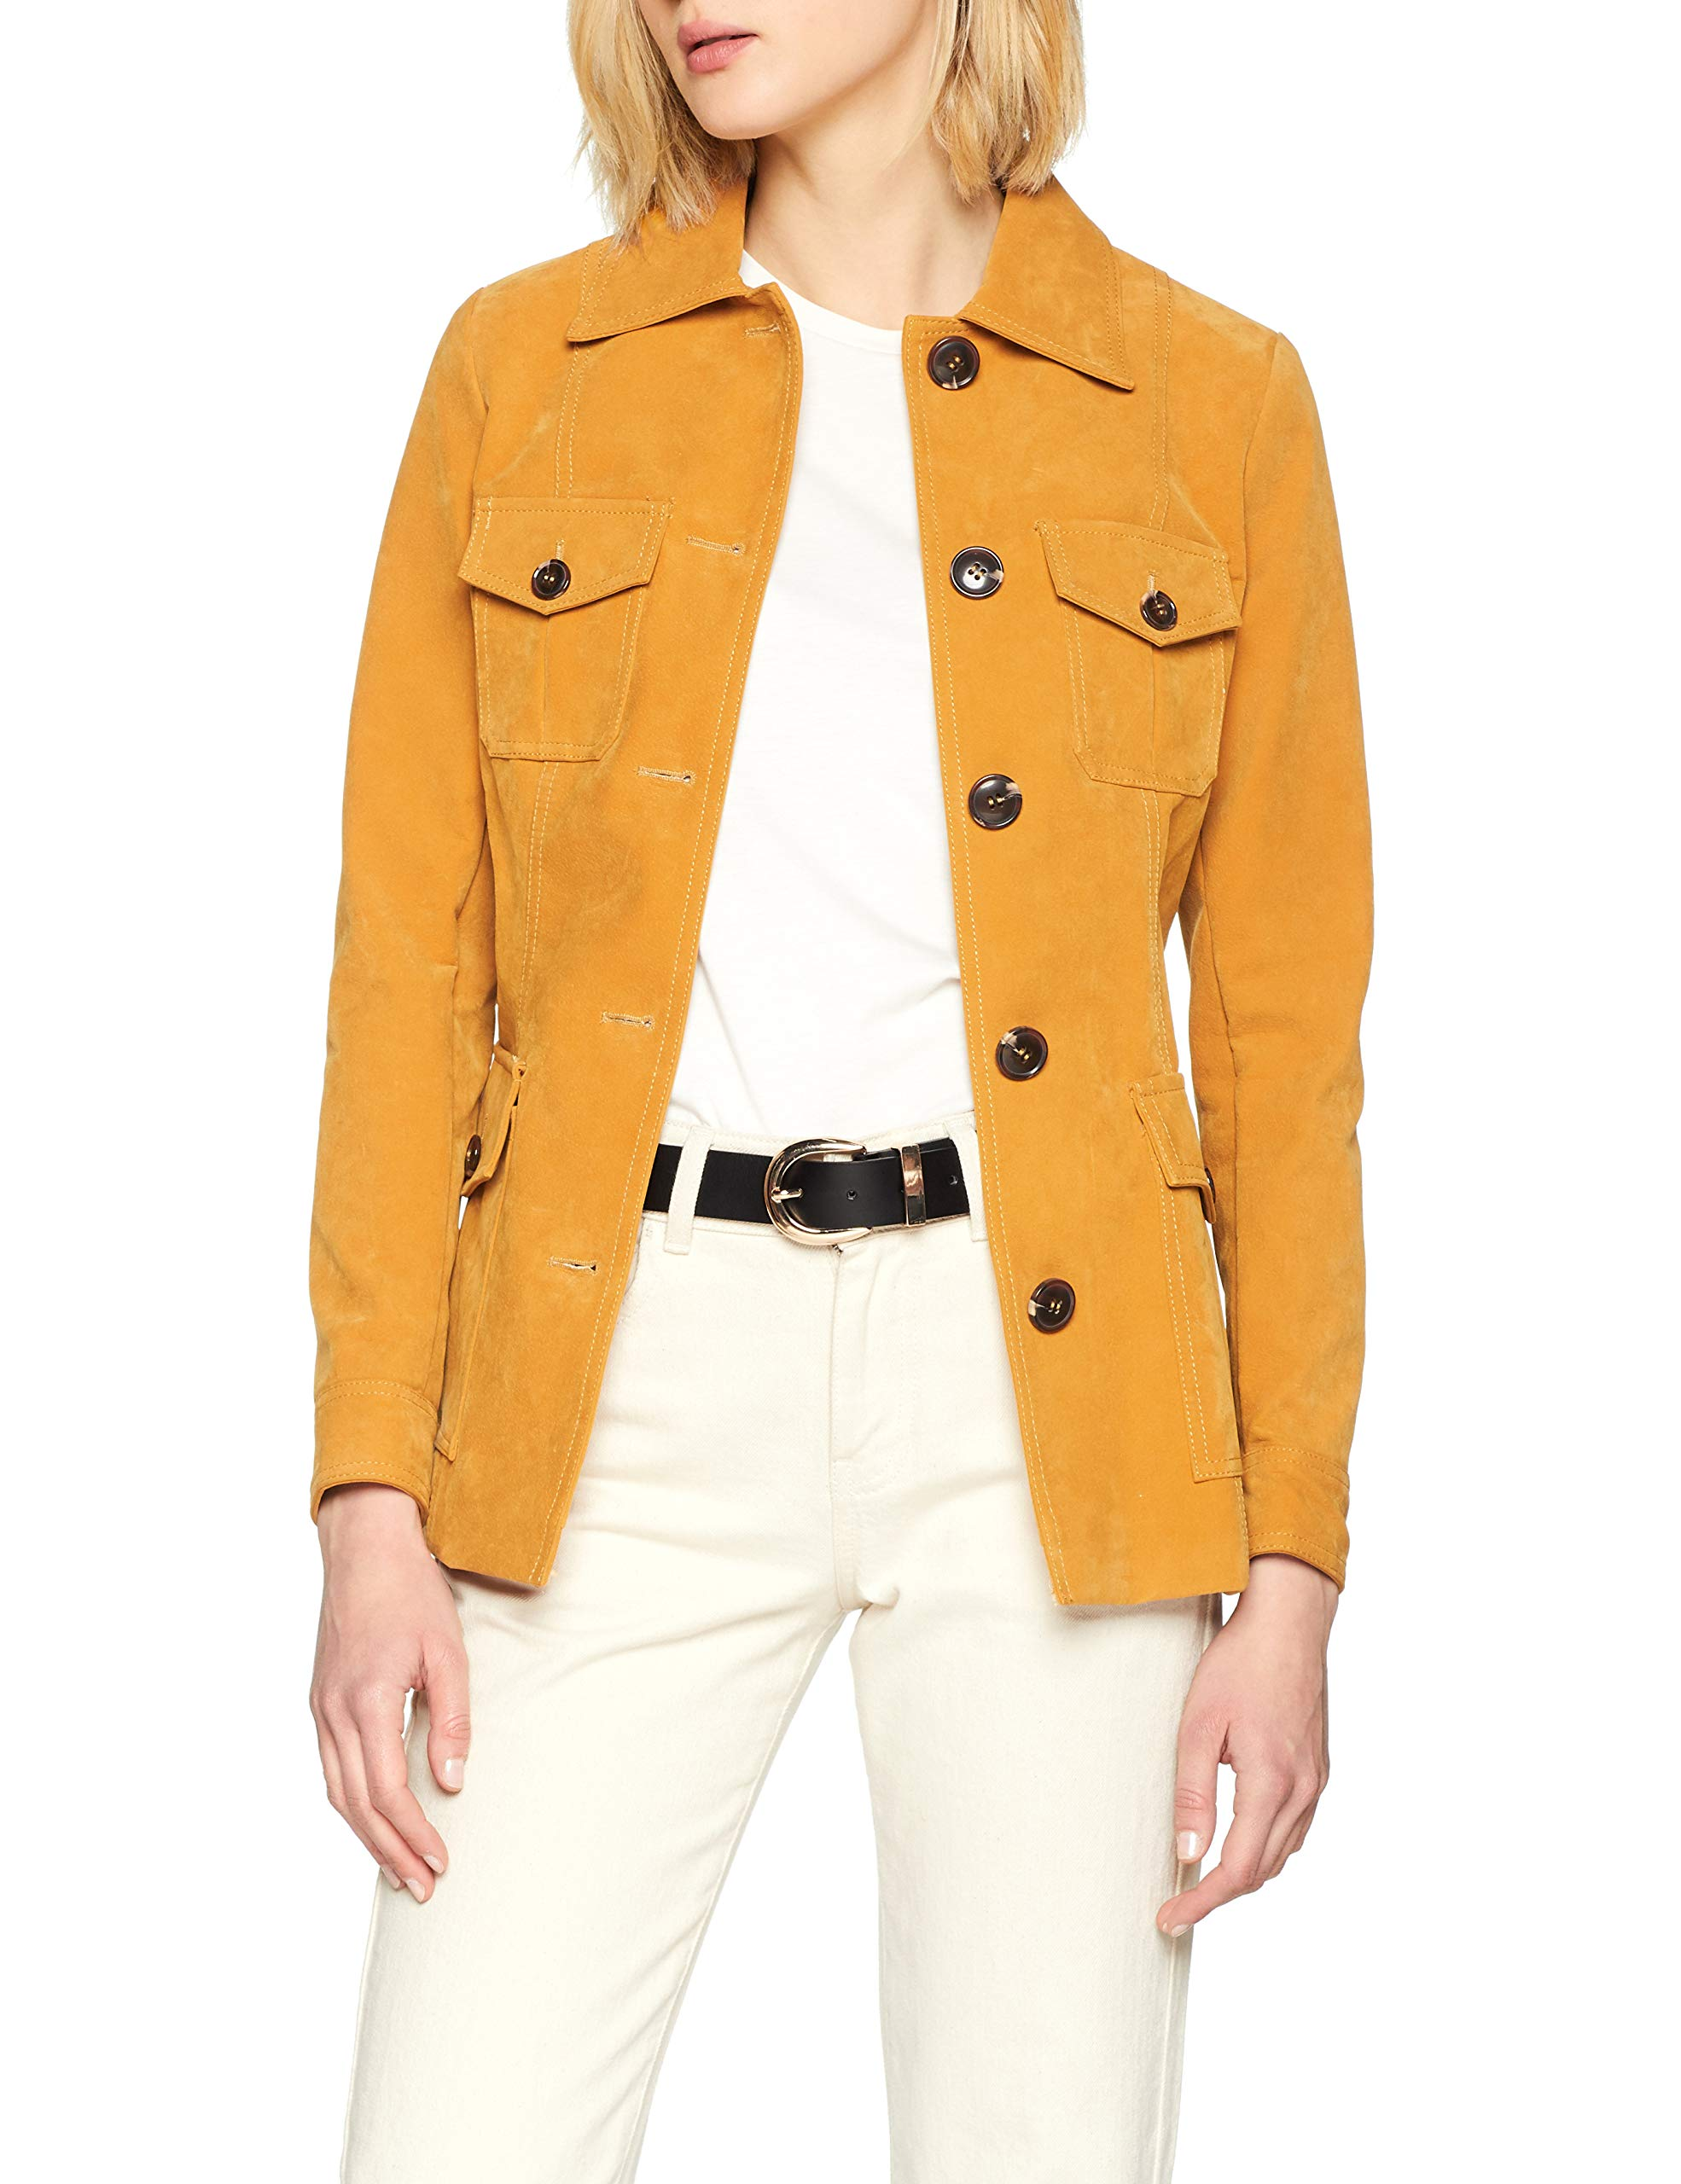 Utility Look 6105425 BlousonJaunedark Belted 8742taille Yellow New Fabricant14Femme m0N8nw